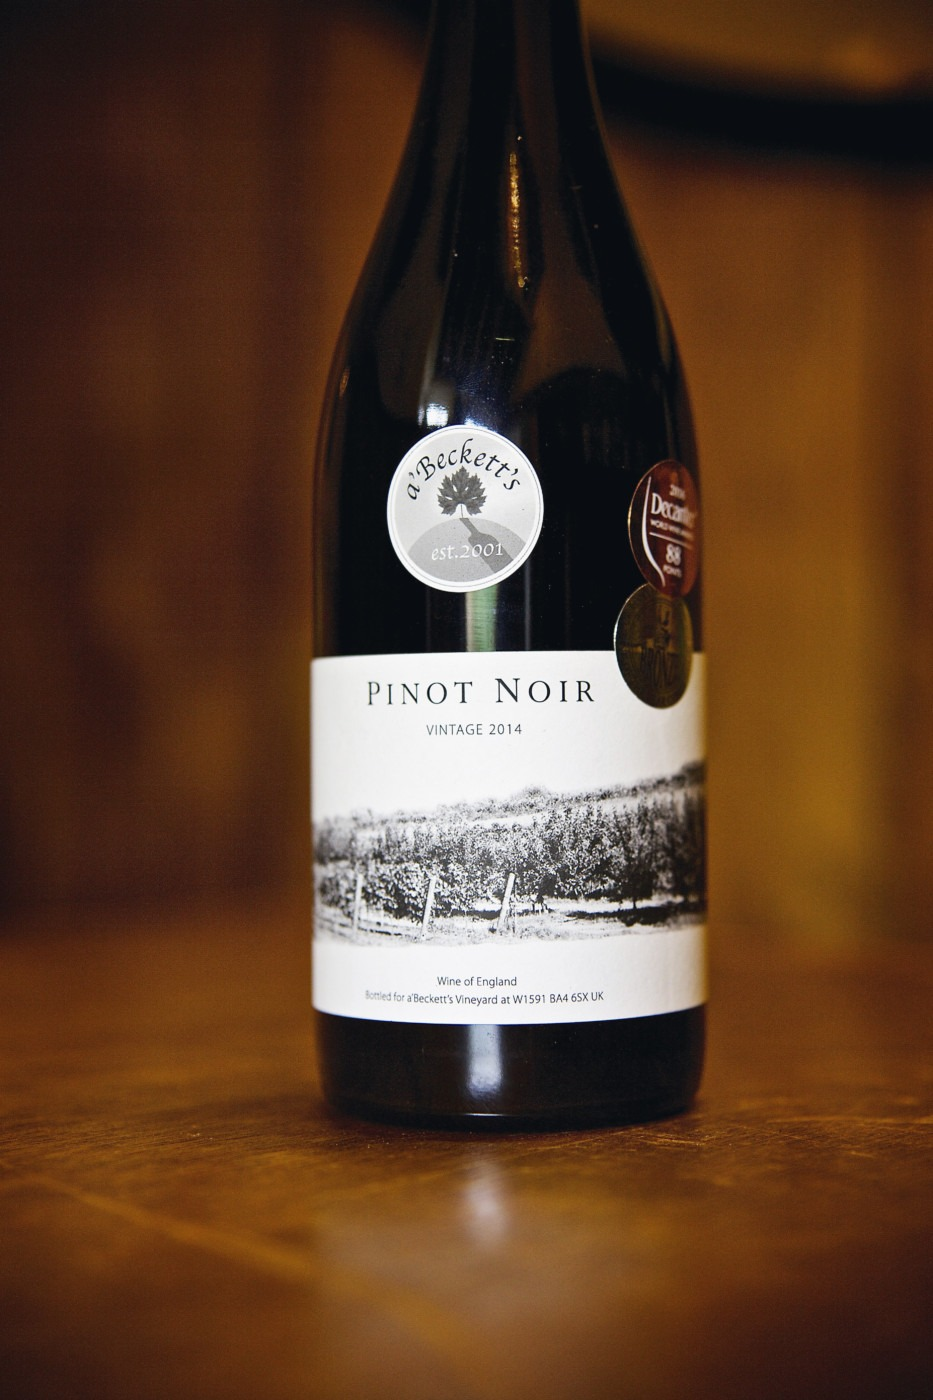 Pinot noir 2014 a 39 beckett 39 s vineyard for Best pinot noir in the world